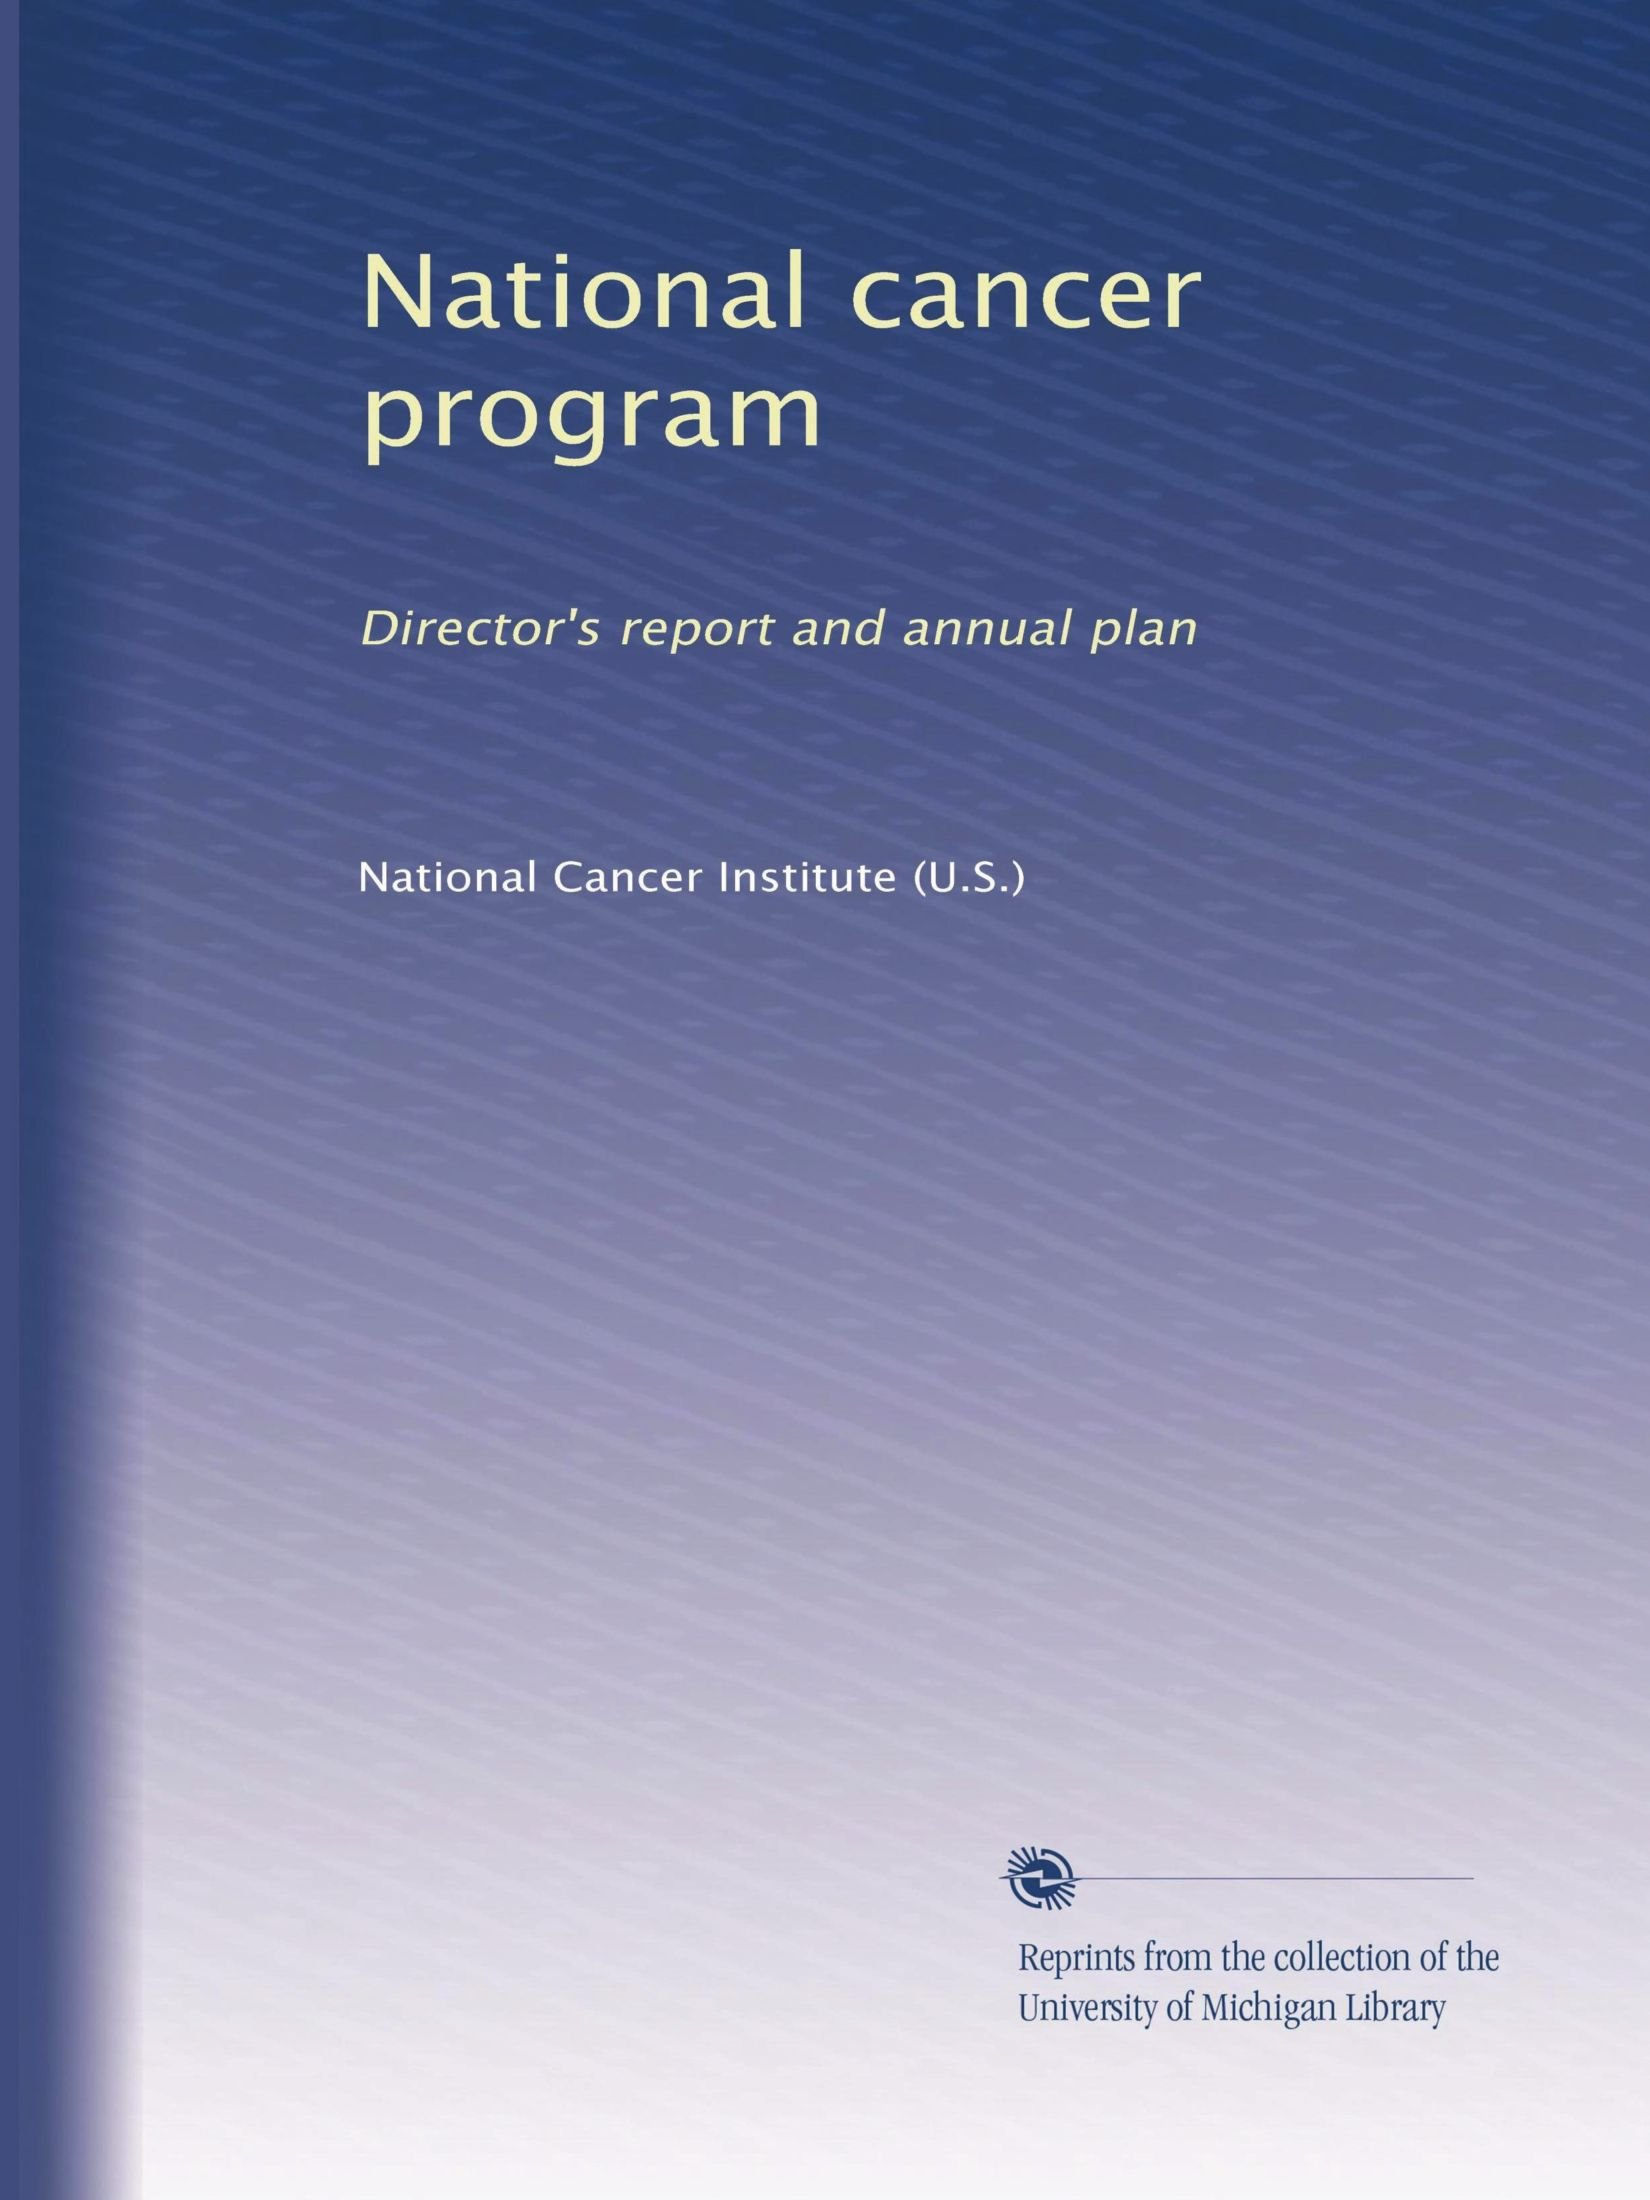 National cancer program: Director's report and annual plan ebook